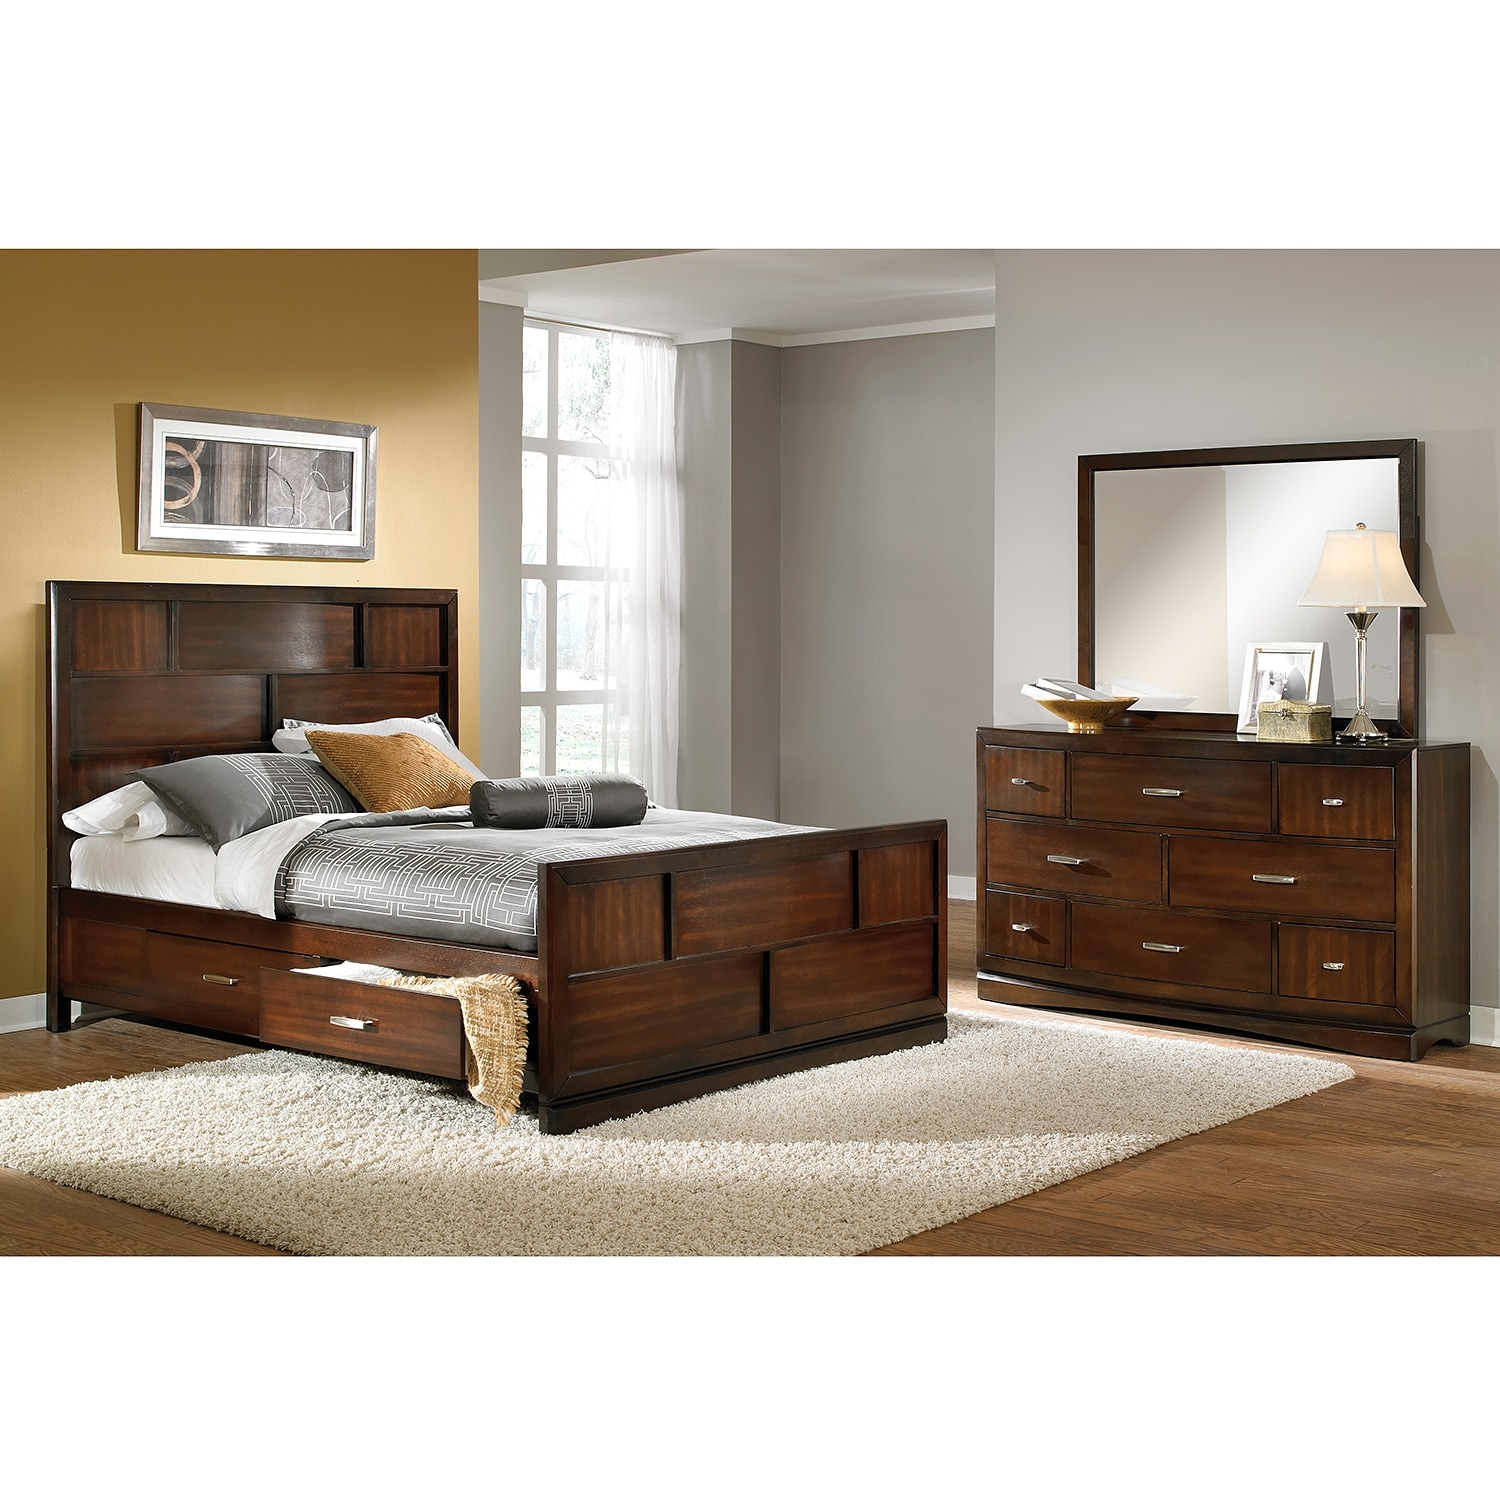 Toronto 5 piece king storage bedroom set pecan for Signature furniture